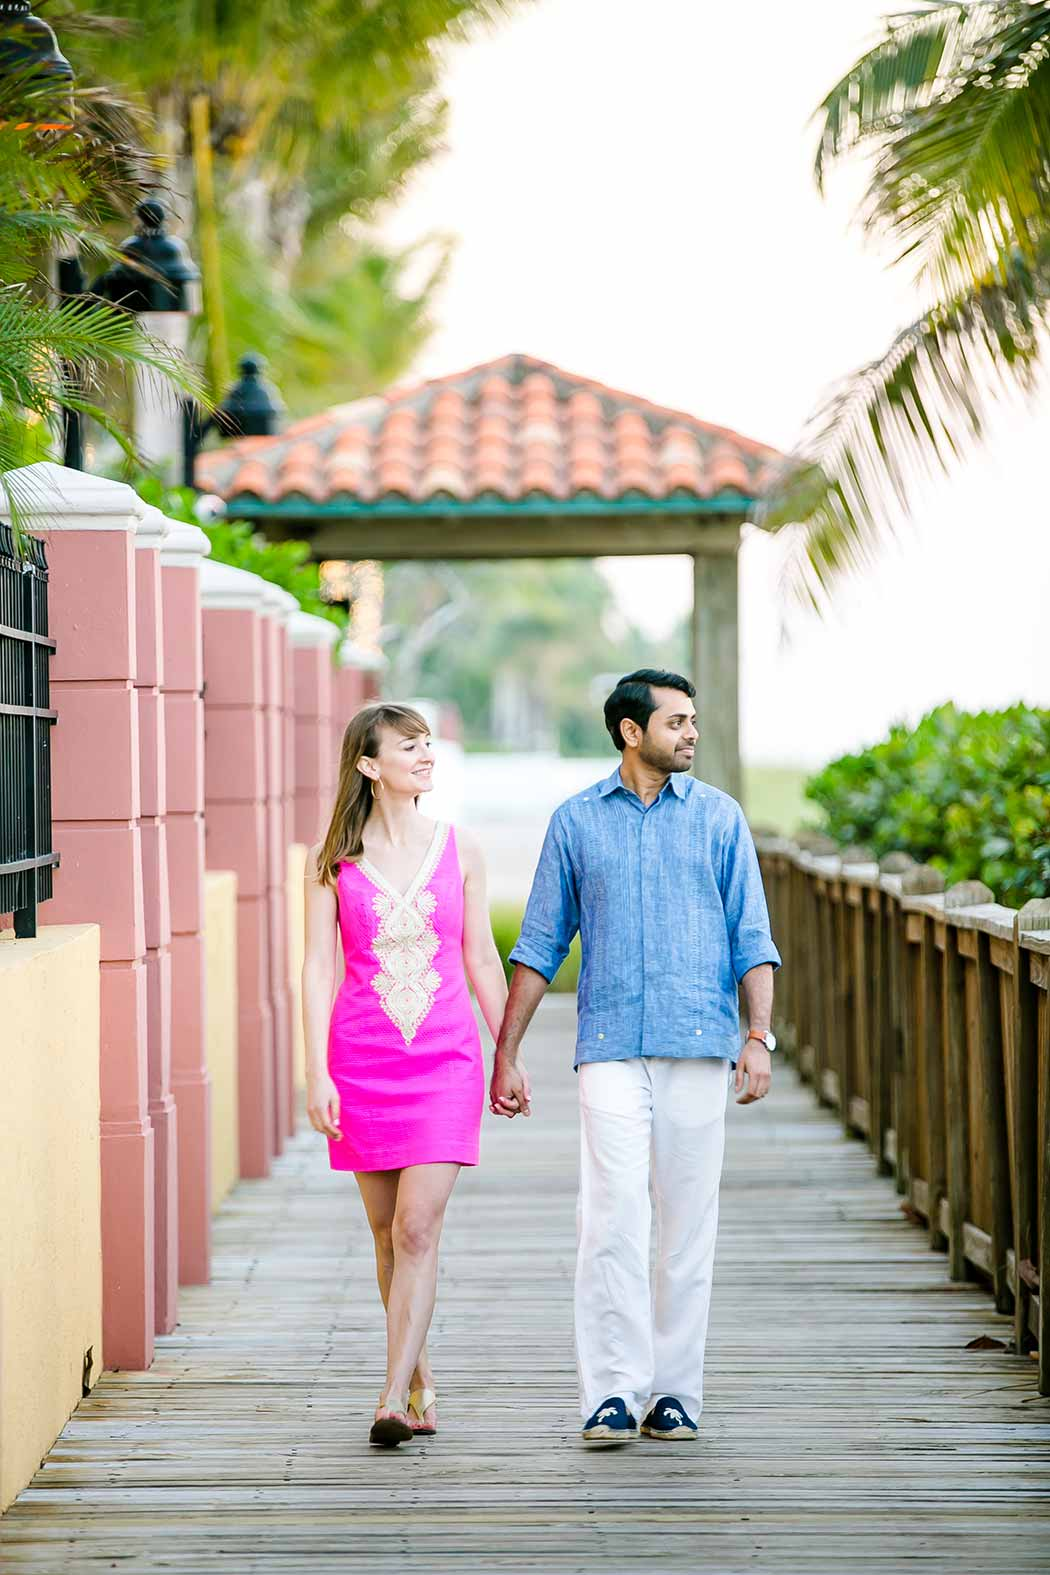 engaged couple walk on wooden walkway | fort lauderdale beach engagement | beach engagement photography fort lauderdale | beach walkway photoshoot in south florida